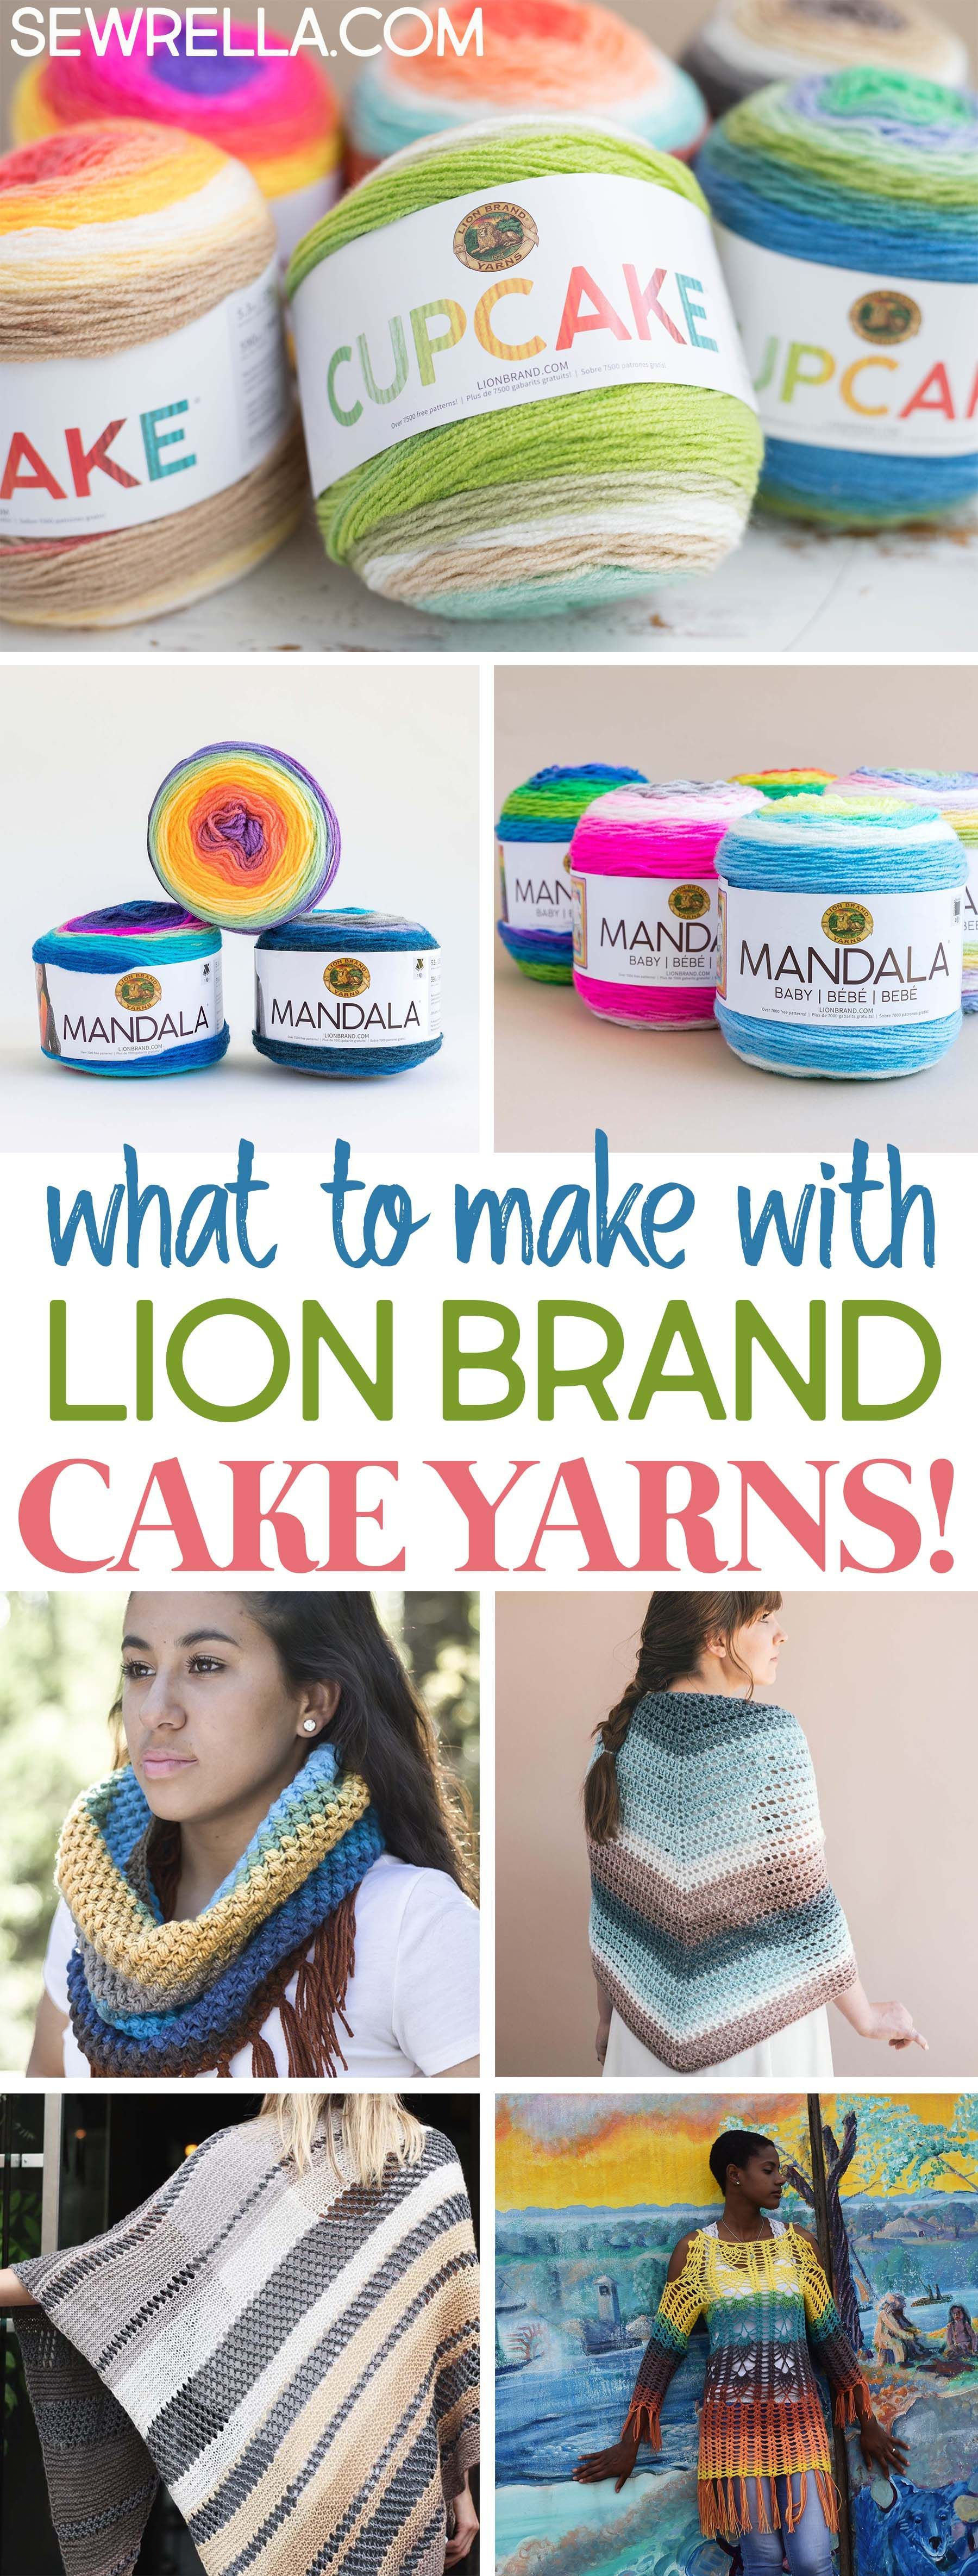 Knit and Crochet Patterns with Lion Brand Cake Yarns | Crochet ...